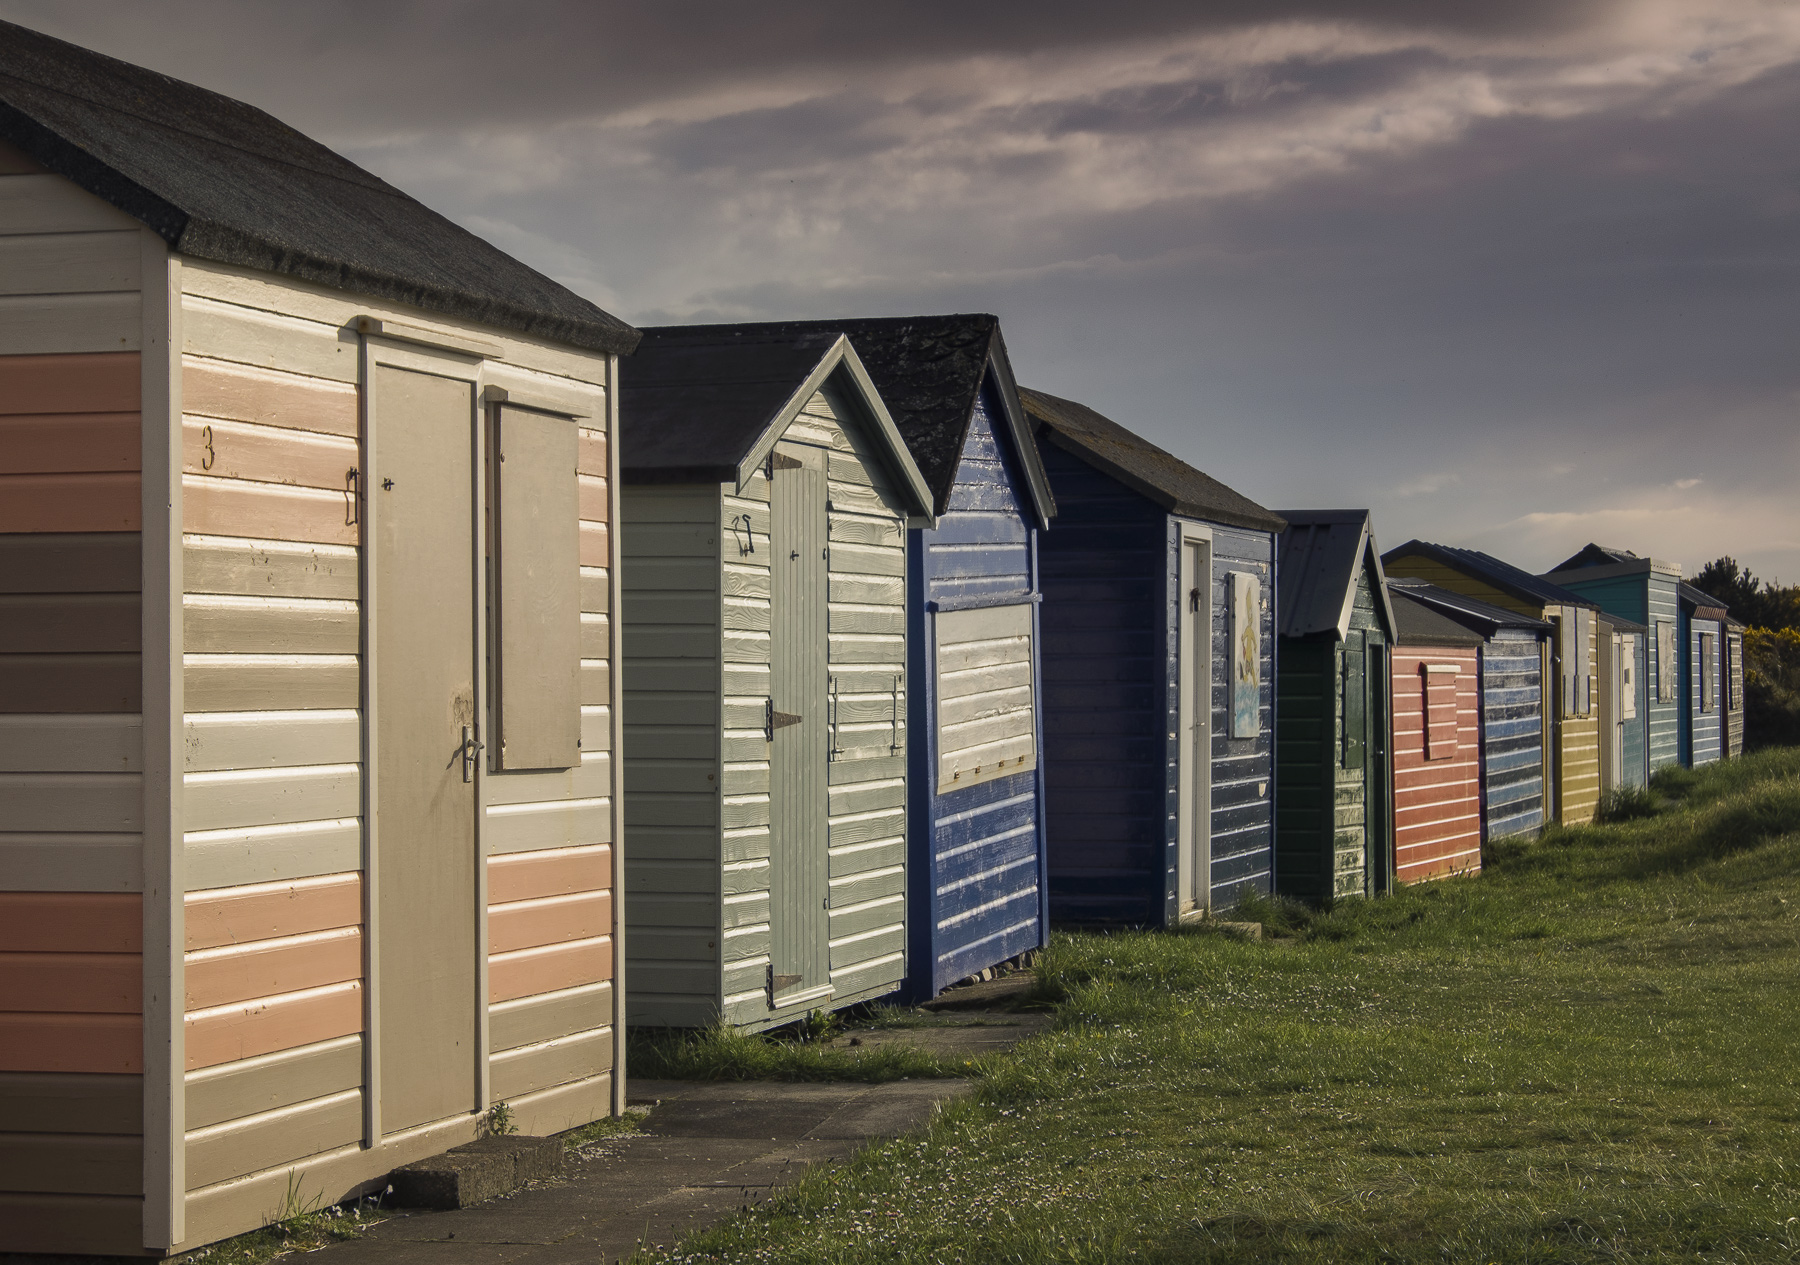 Hopeman has a wonderful eclectic collection of wooden beach huts set along the sea front which are all individual in style and...